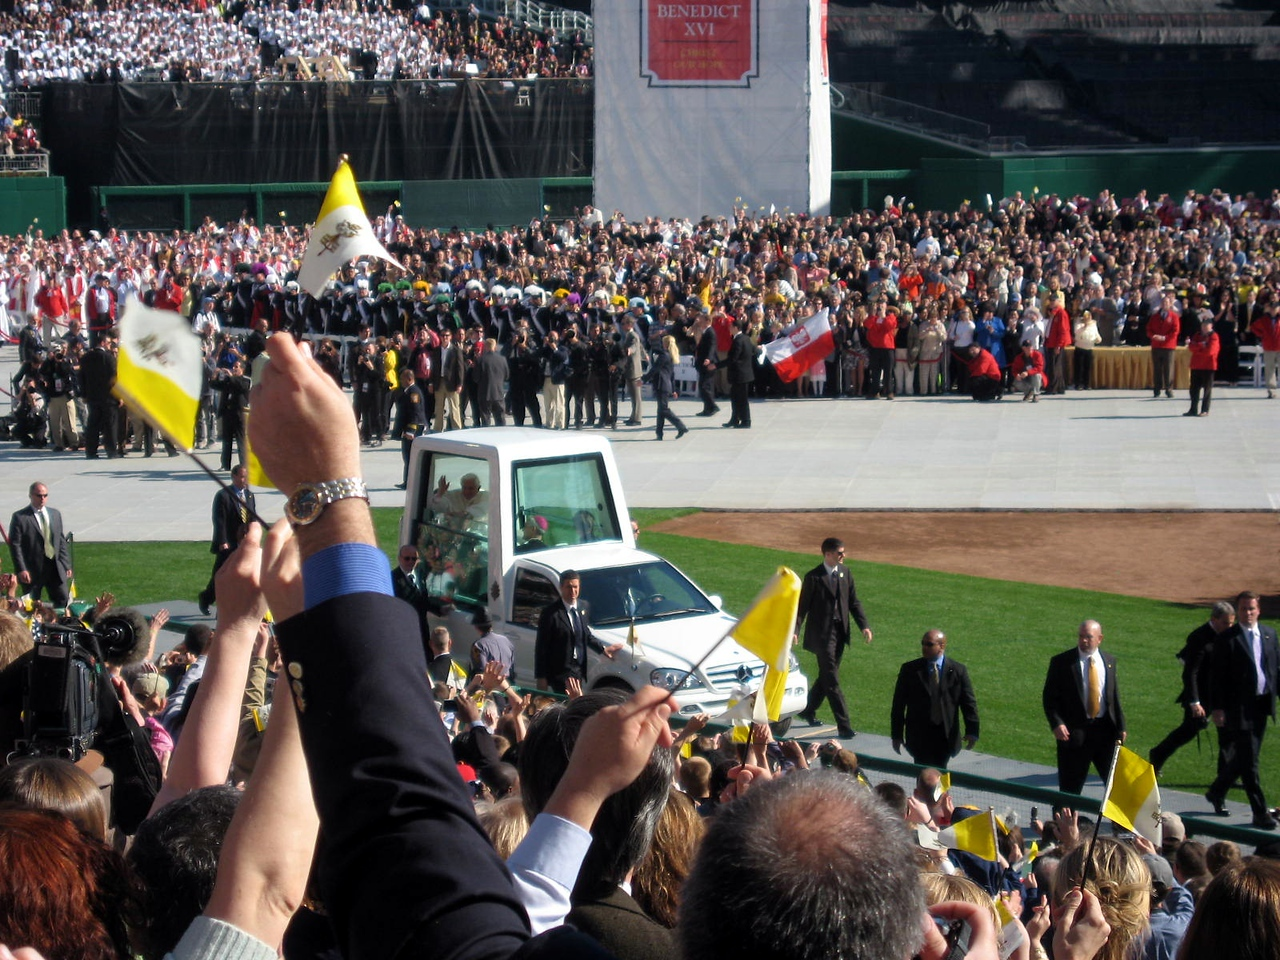 The crowd cheers as Pope Benedict XVI enters the stadium in the popemobile